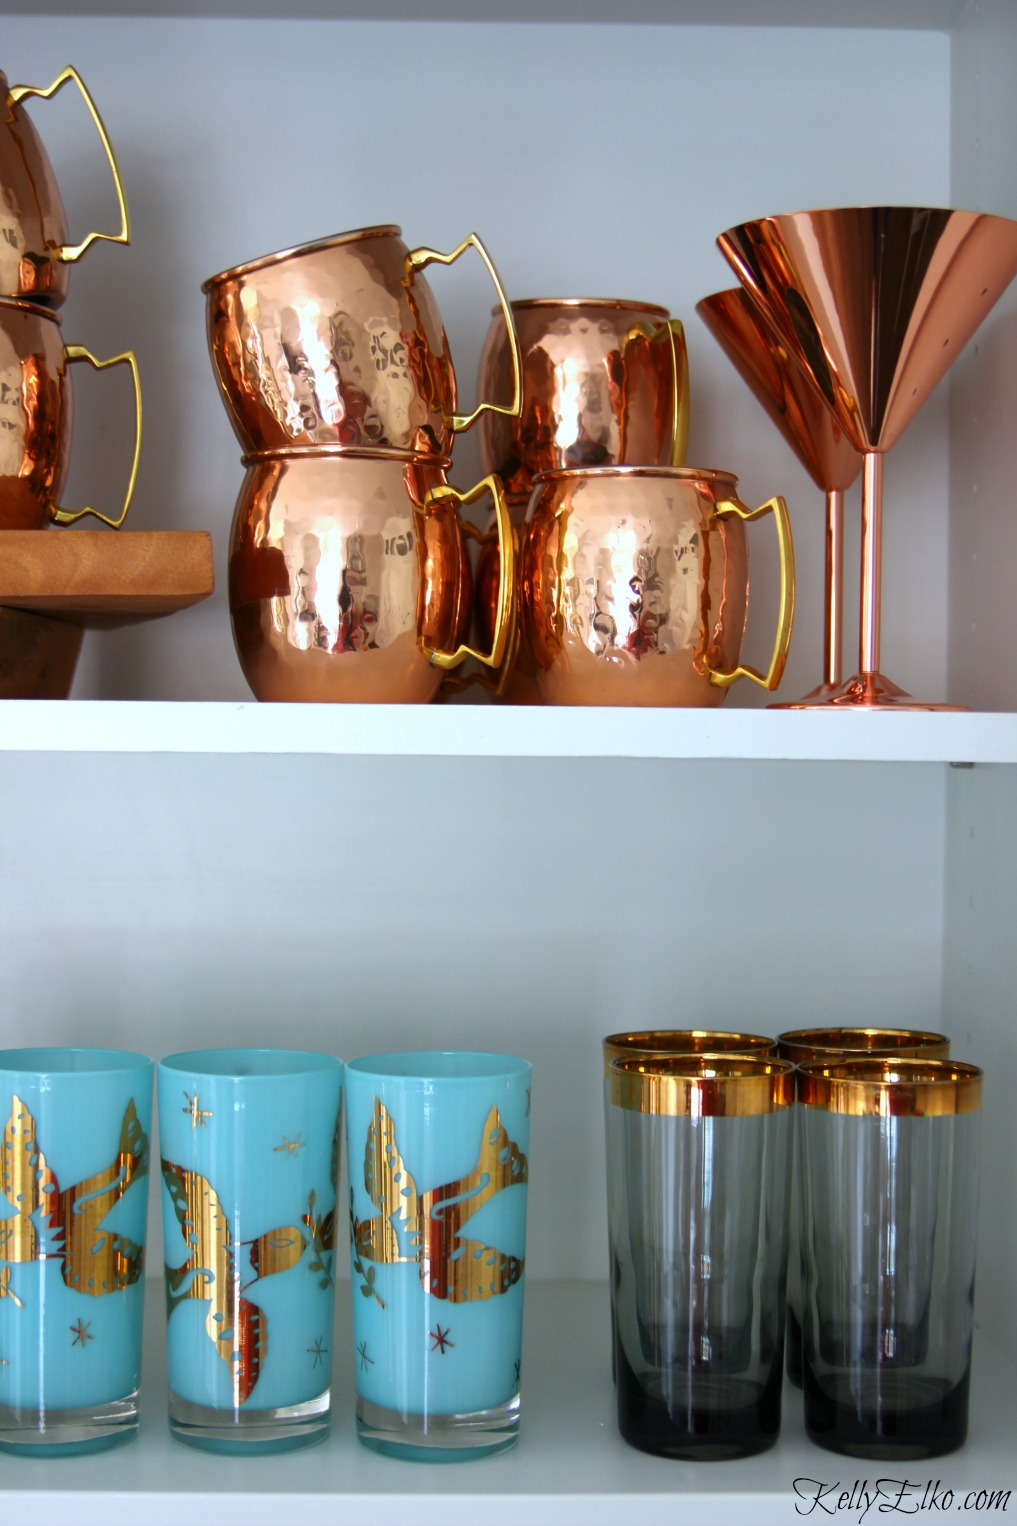 Love the copper moscow mule mugs, rose gold martini glasses and vintage drinking glasses on display kellyelko.com